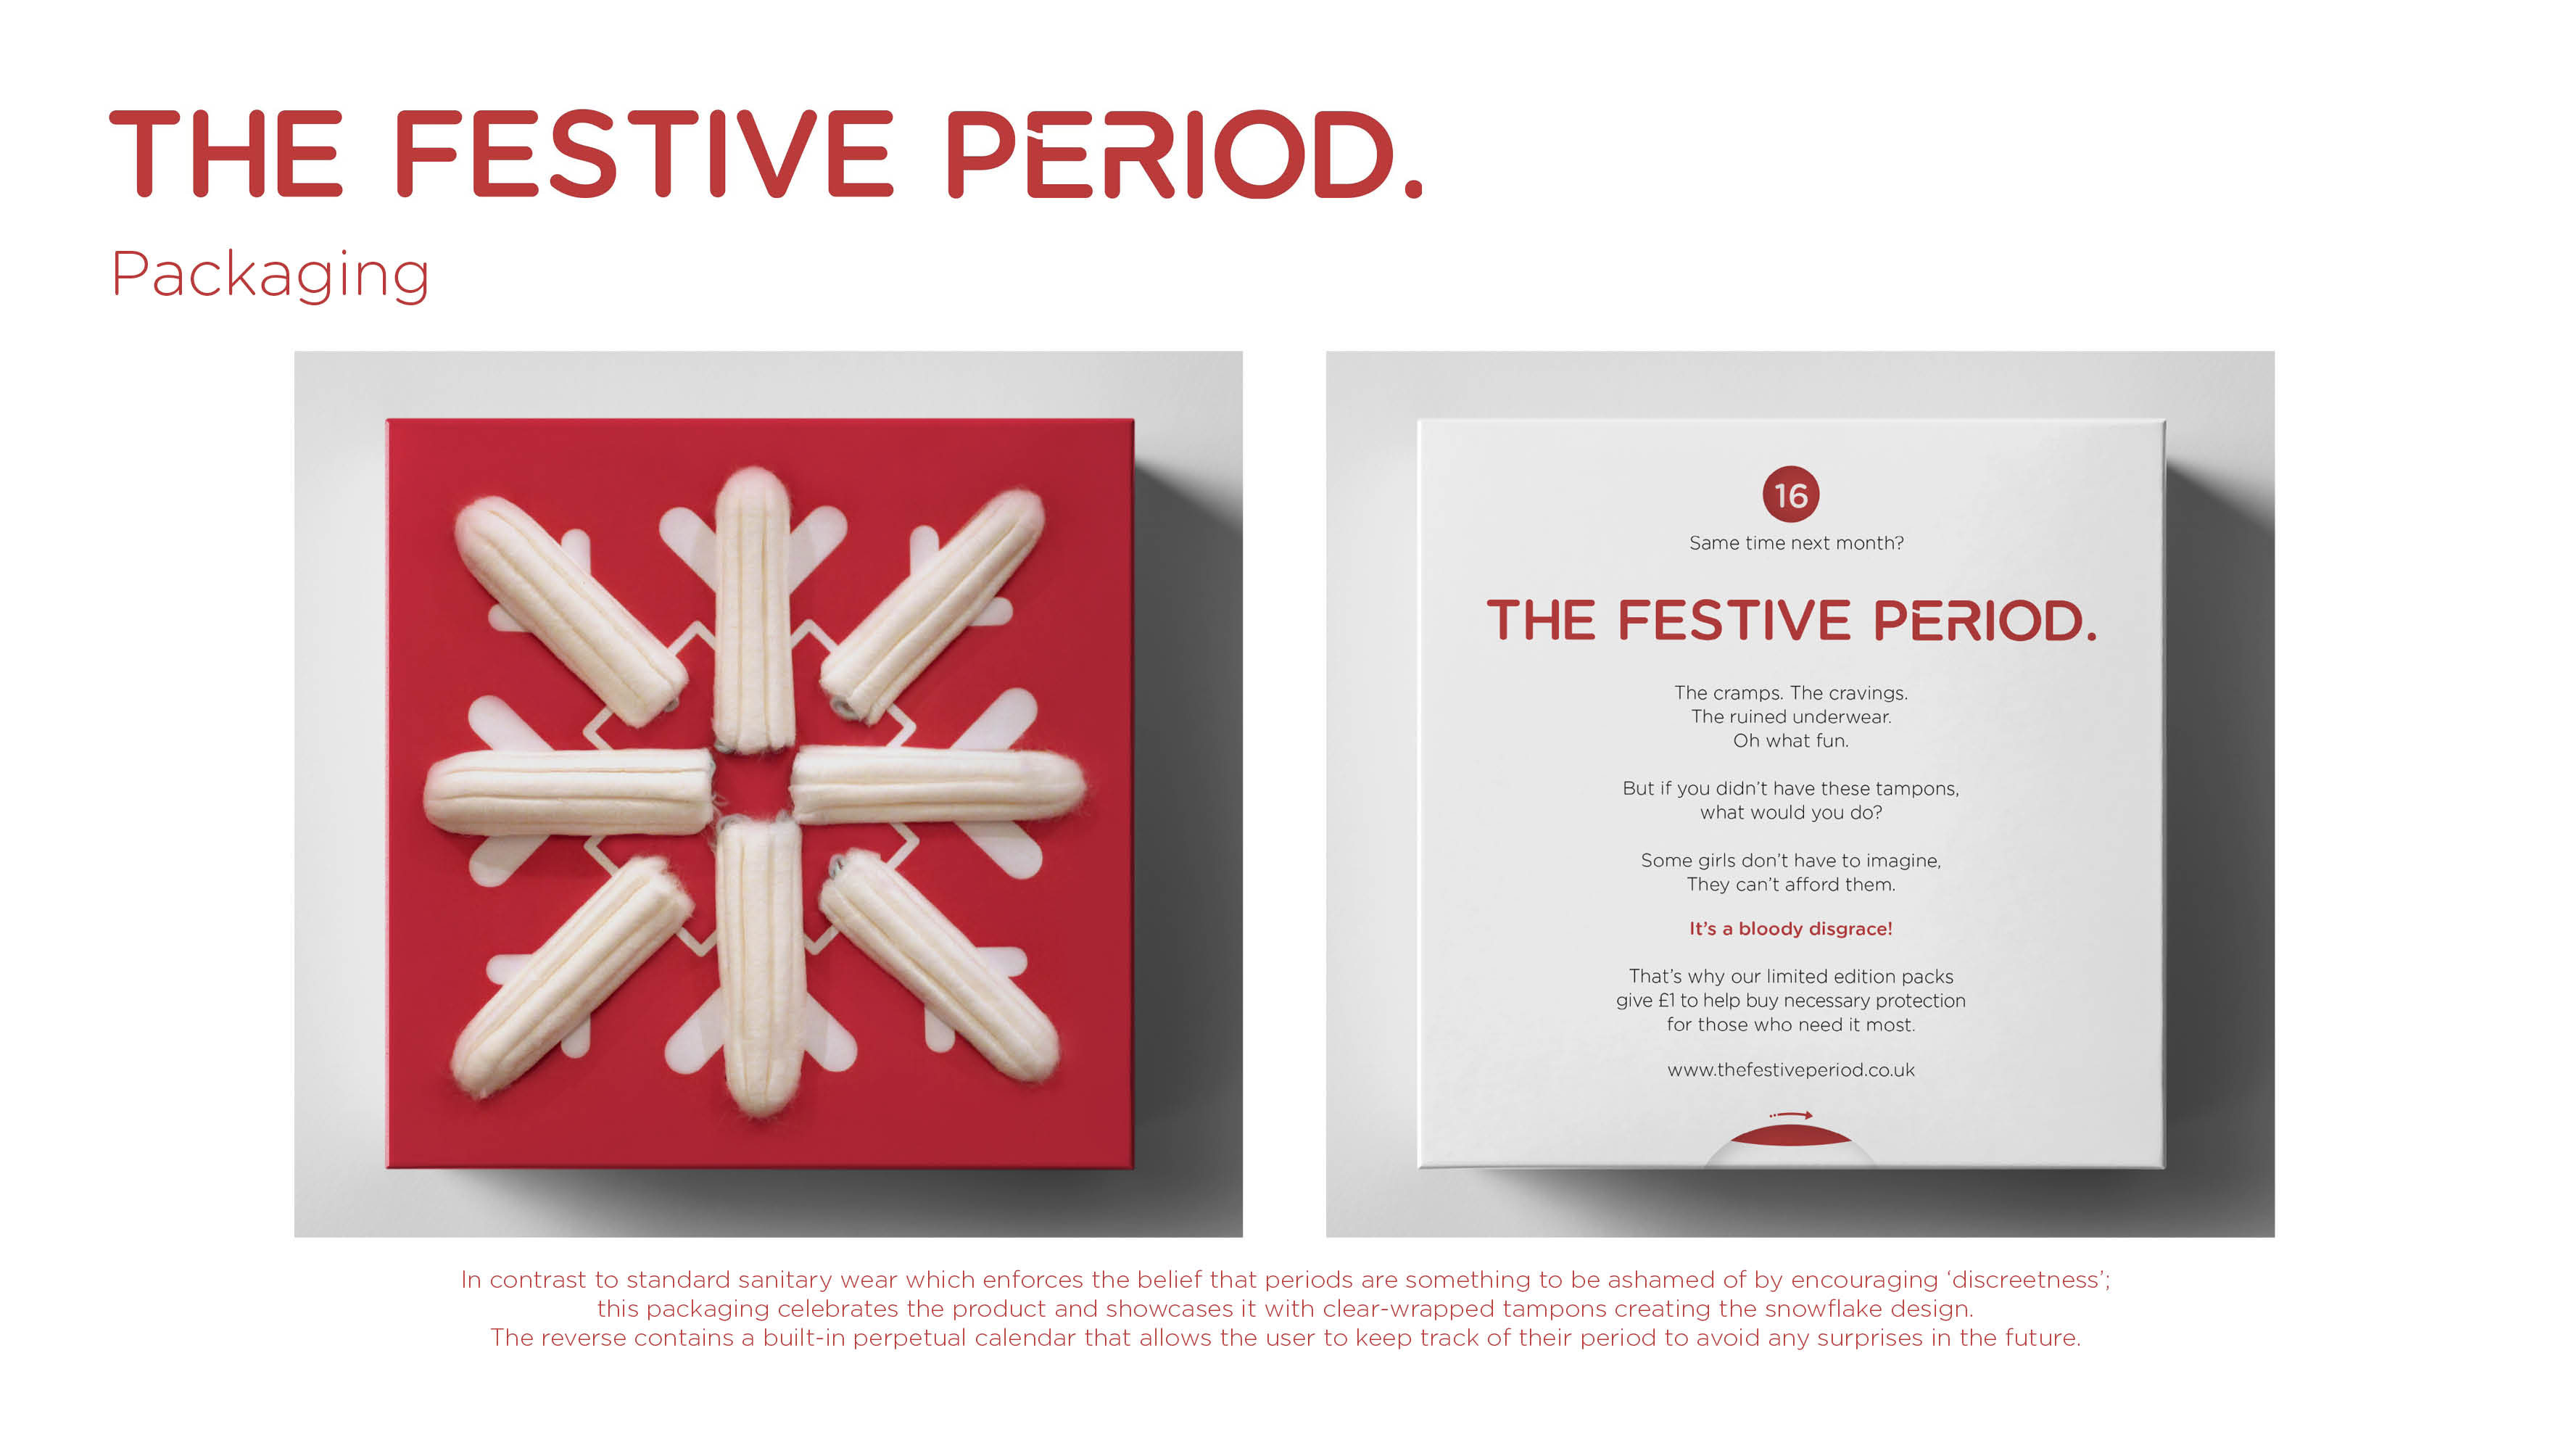 The Festive Period - Packaging Image